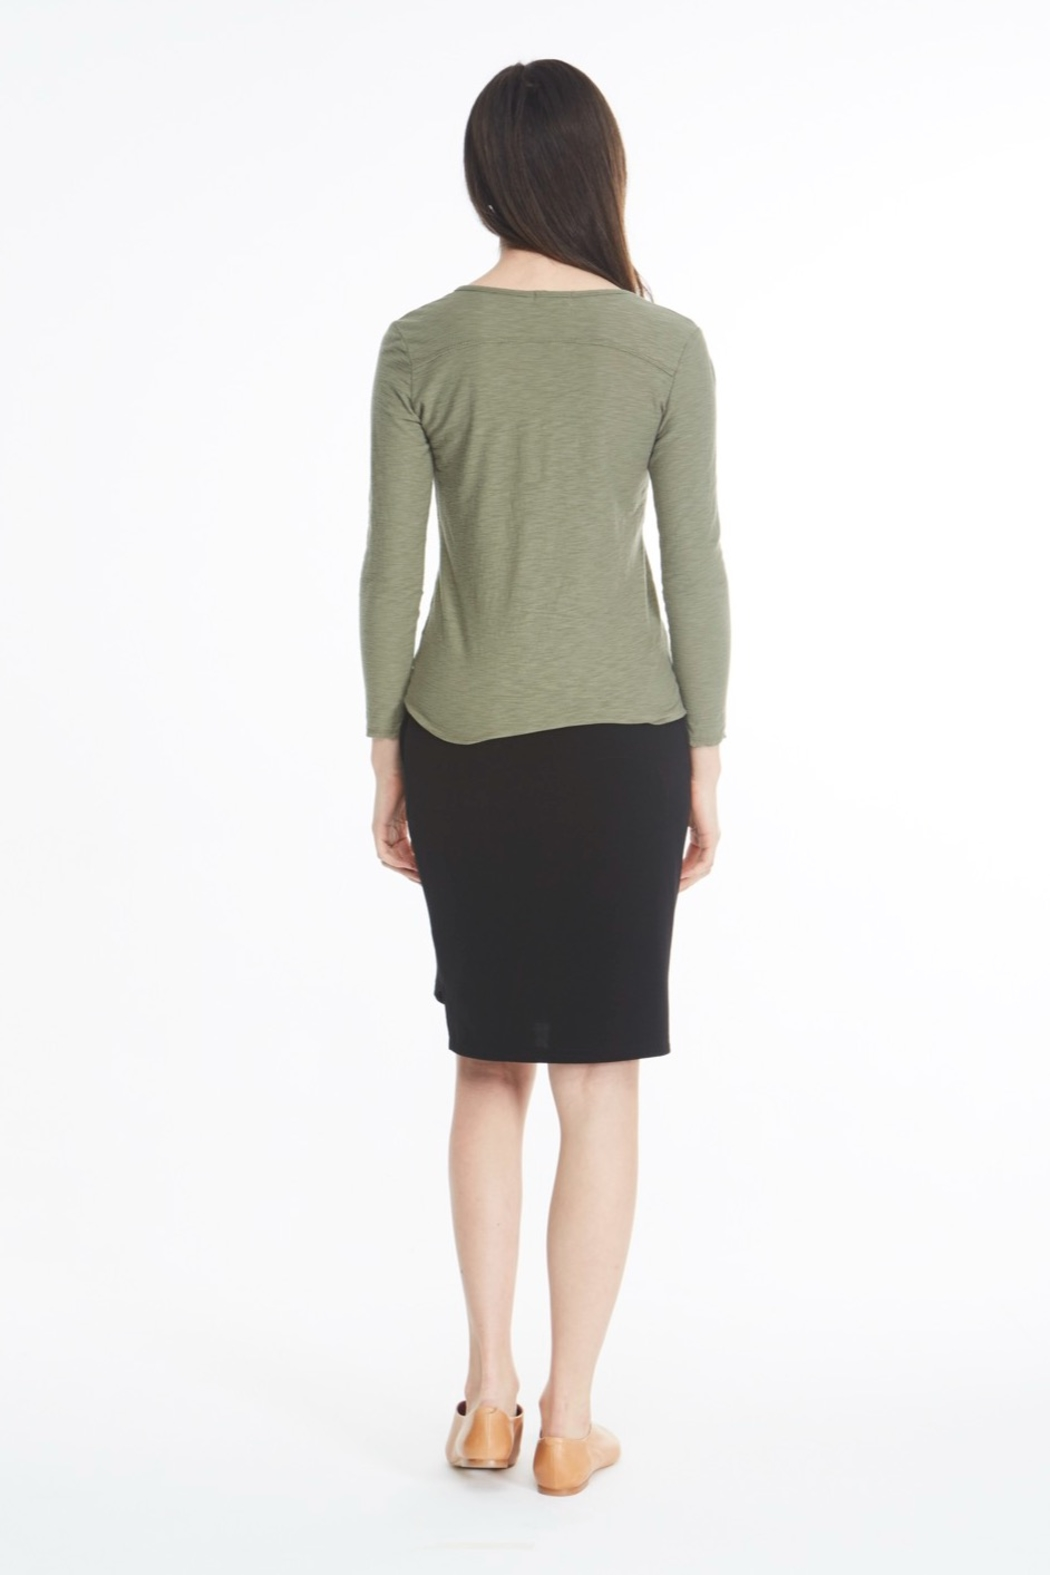 Michelle by Comune Mesa V Neck Long Sleeve Top - Front Full Image